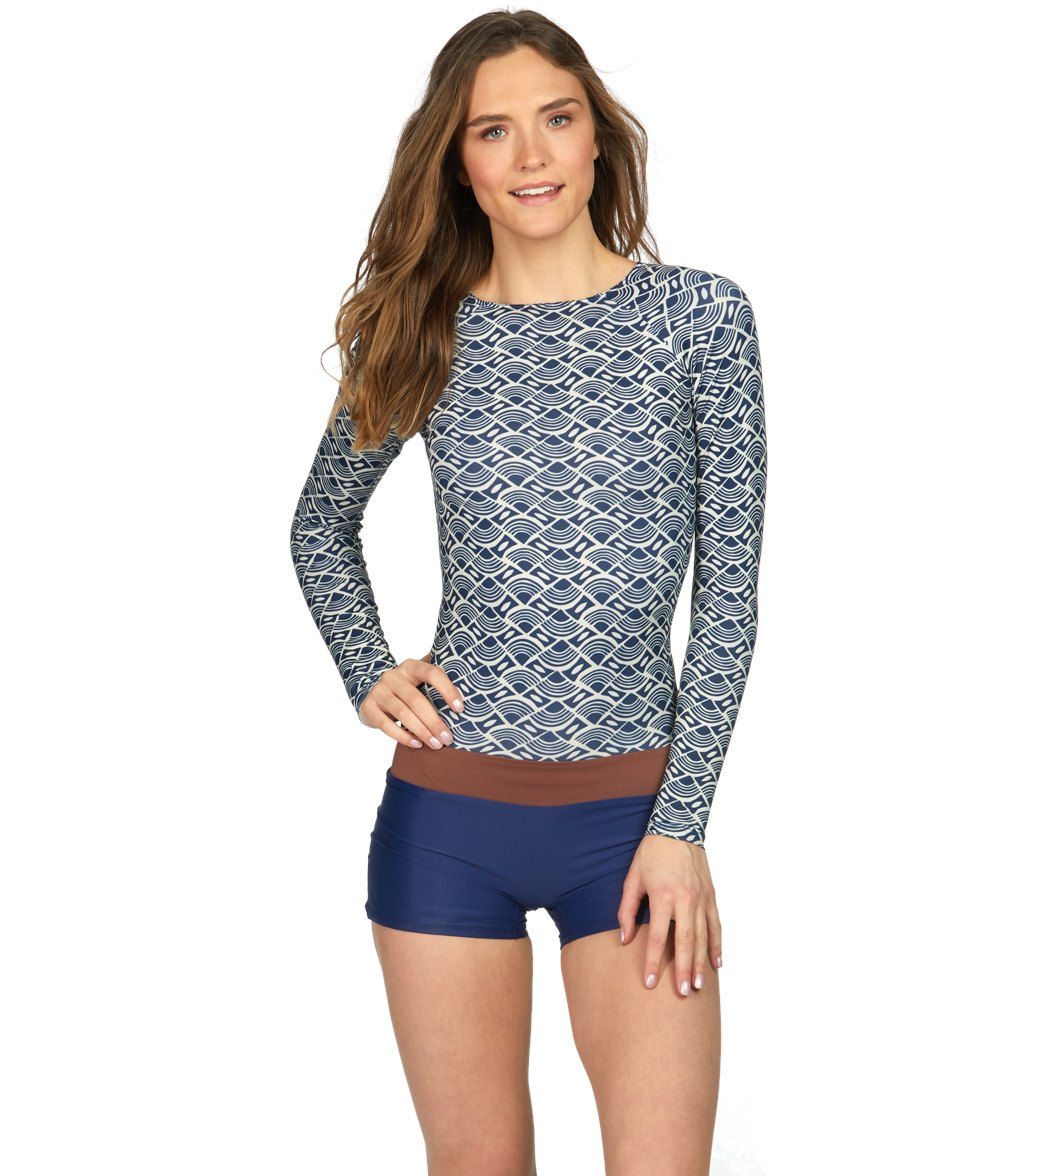 cf00fb10bc Seea Swami s Boro High Neck Long Sleeve One Piece Swimsuit at ...